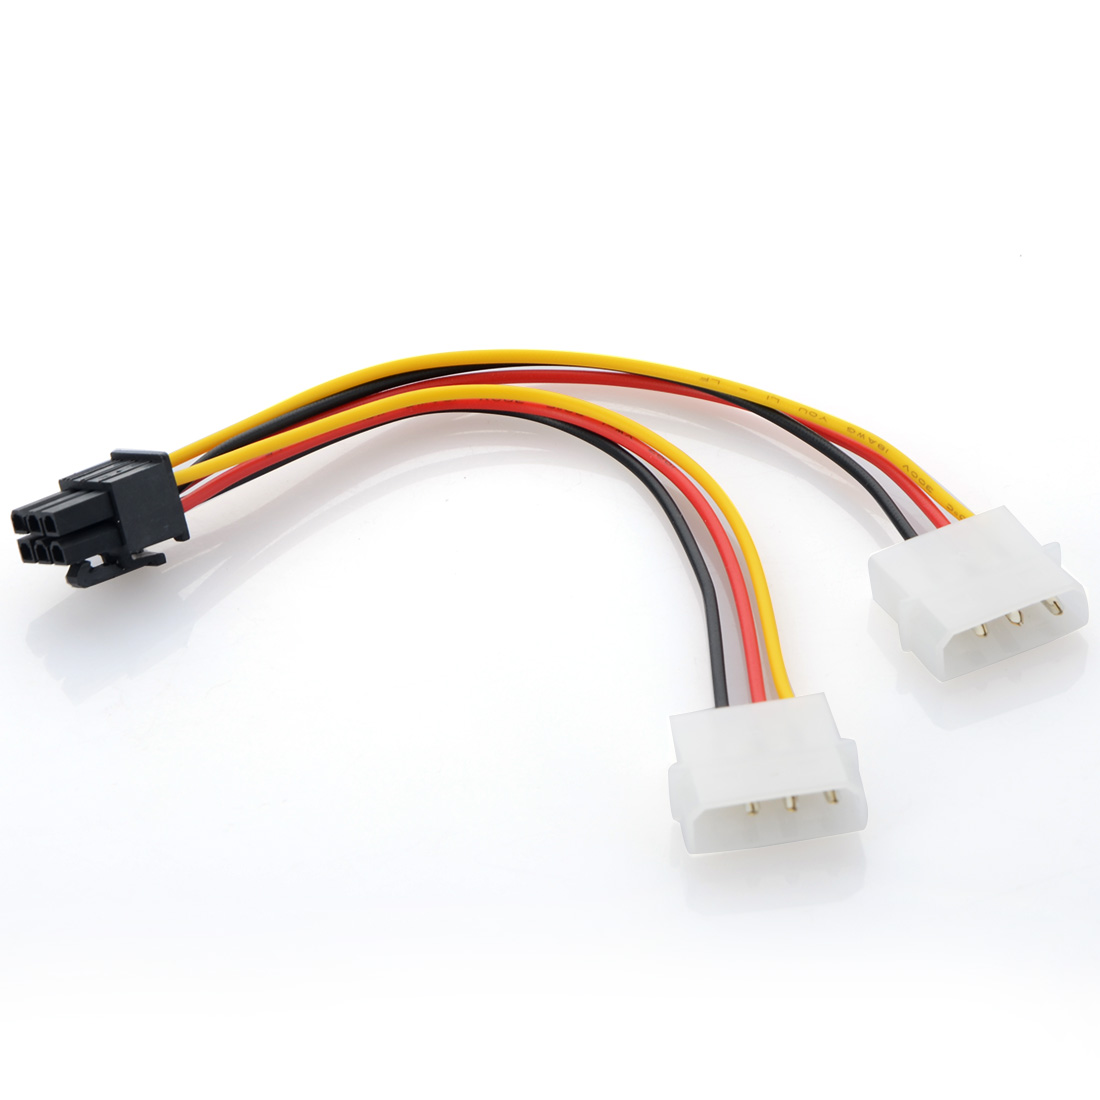 1 X New Double Big 4pin To 6pin Power Adapter Cable PCI-E Graphics Card External Power Cord P15